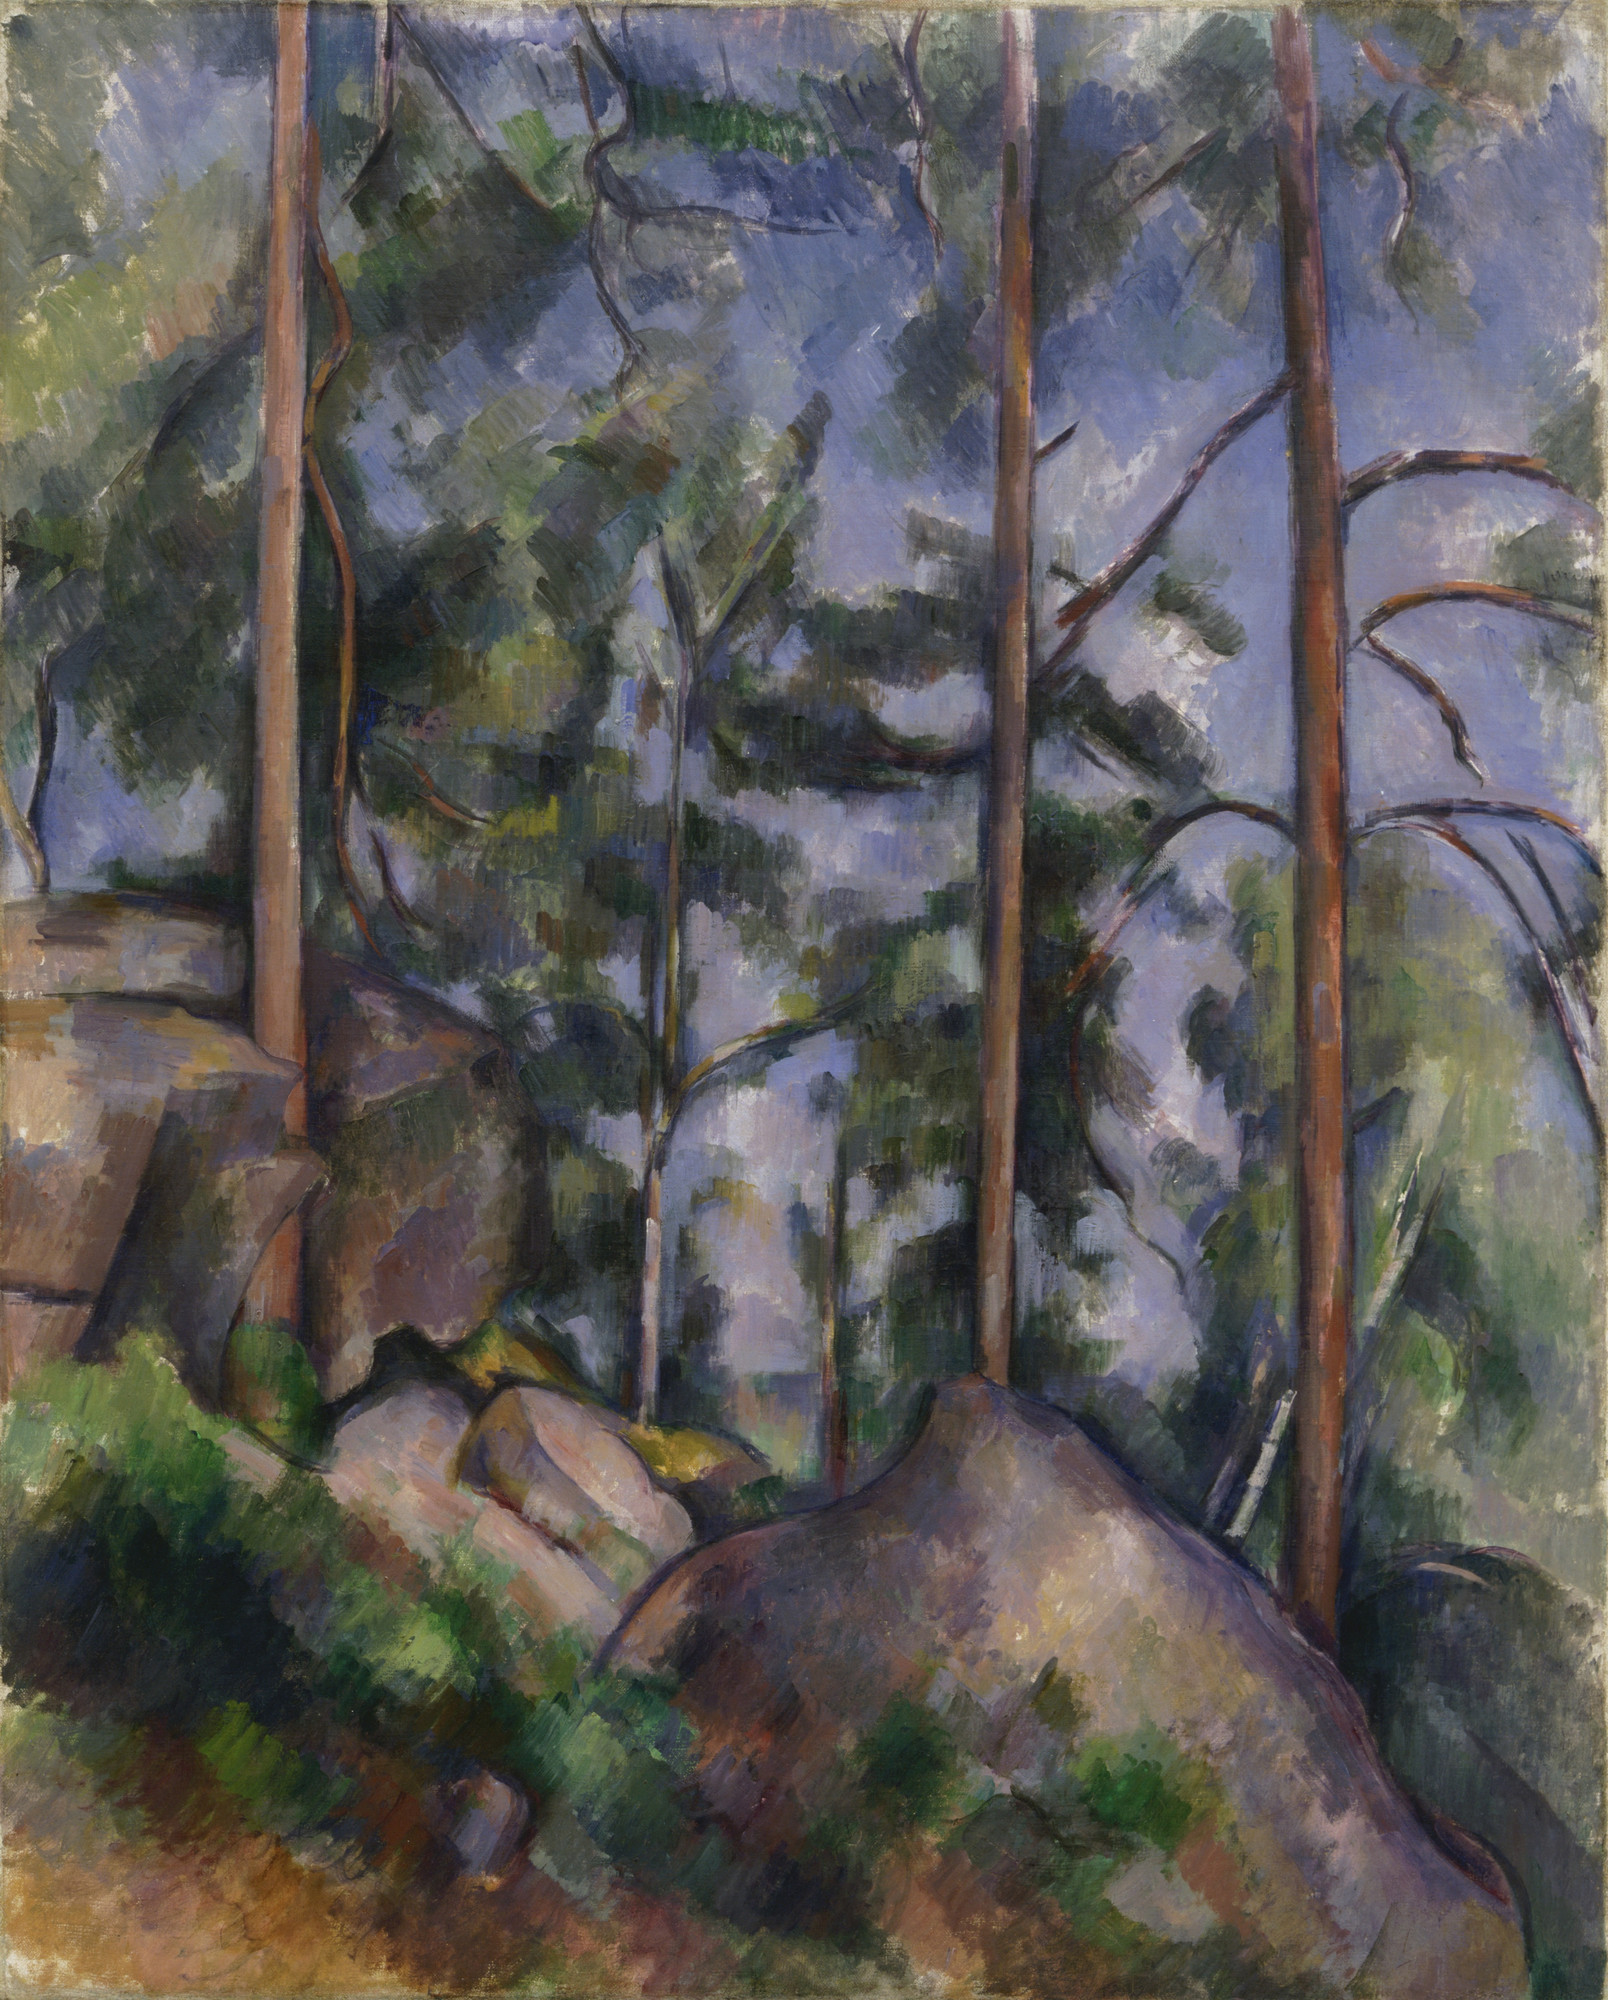 Paul Cézanne. Pines and Rocks (Fontainebleau?). c. 1897